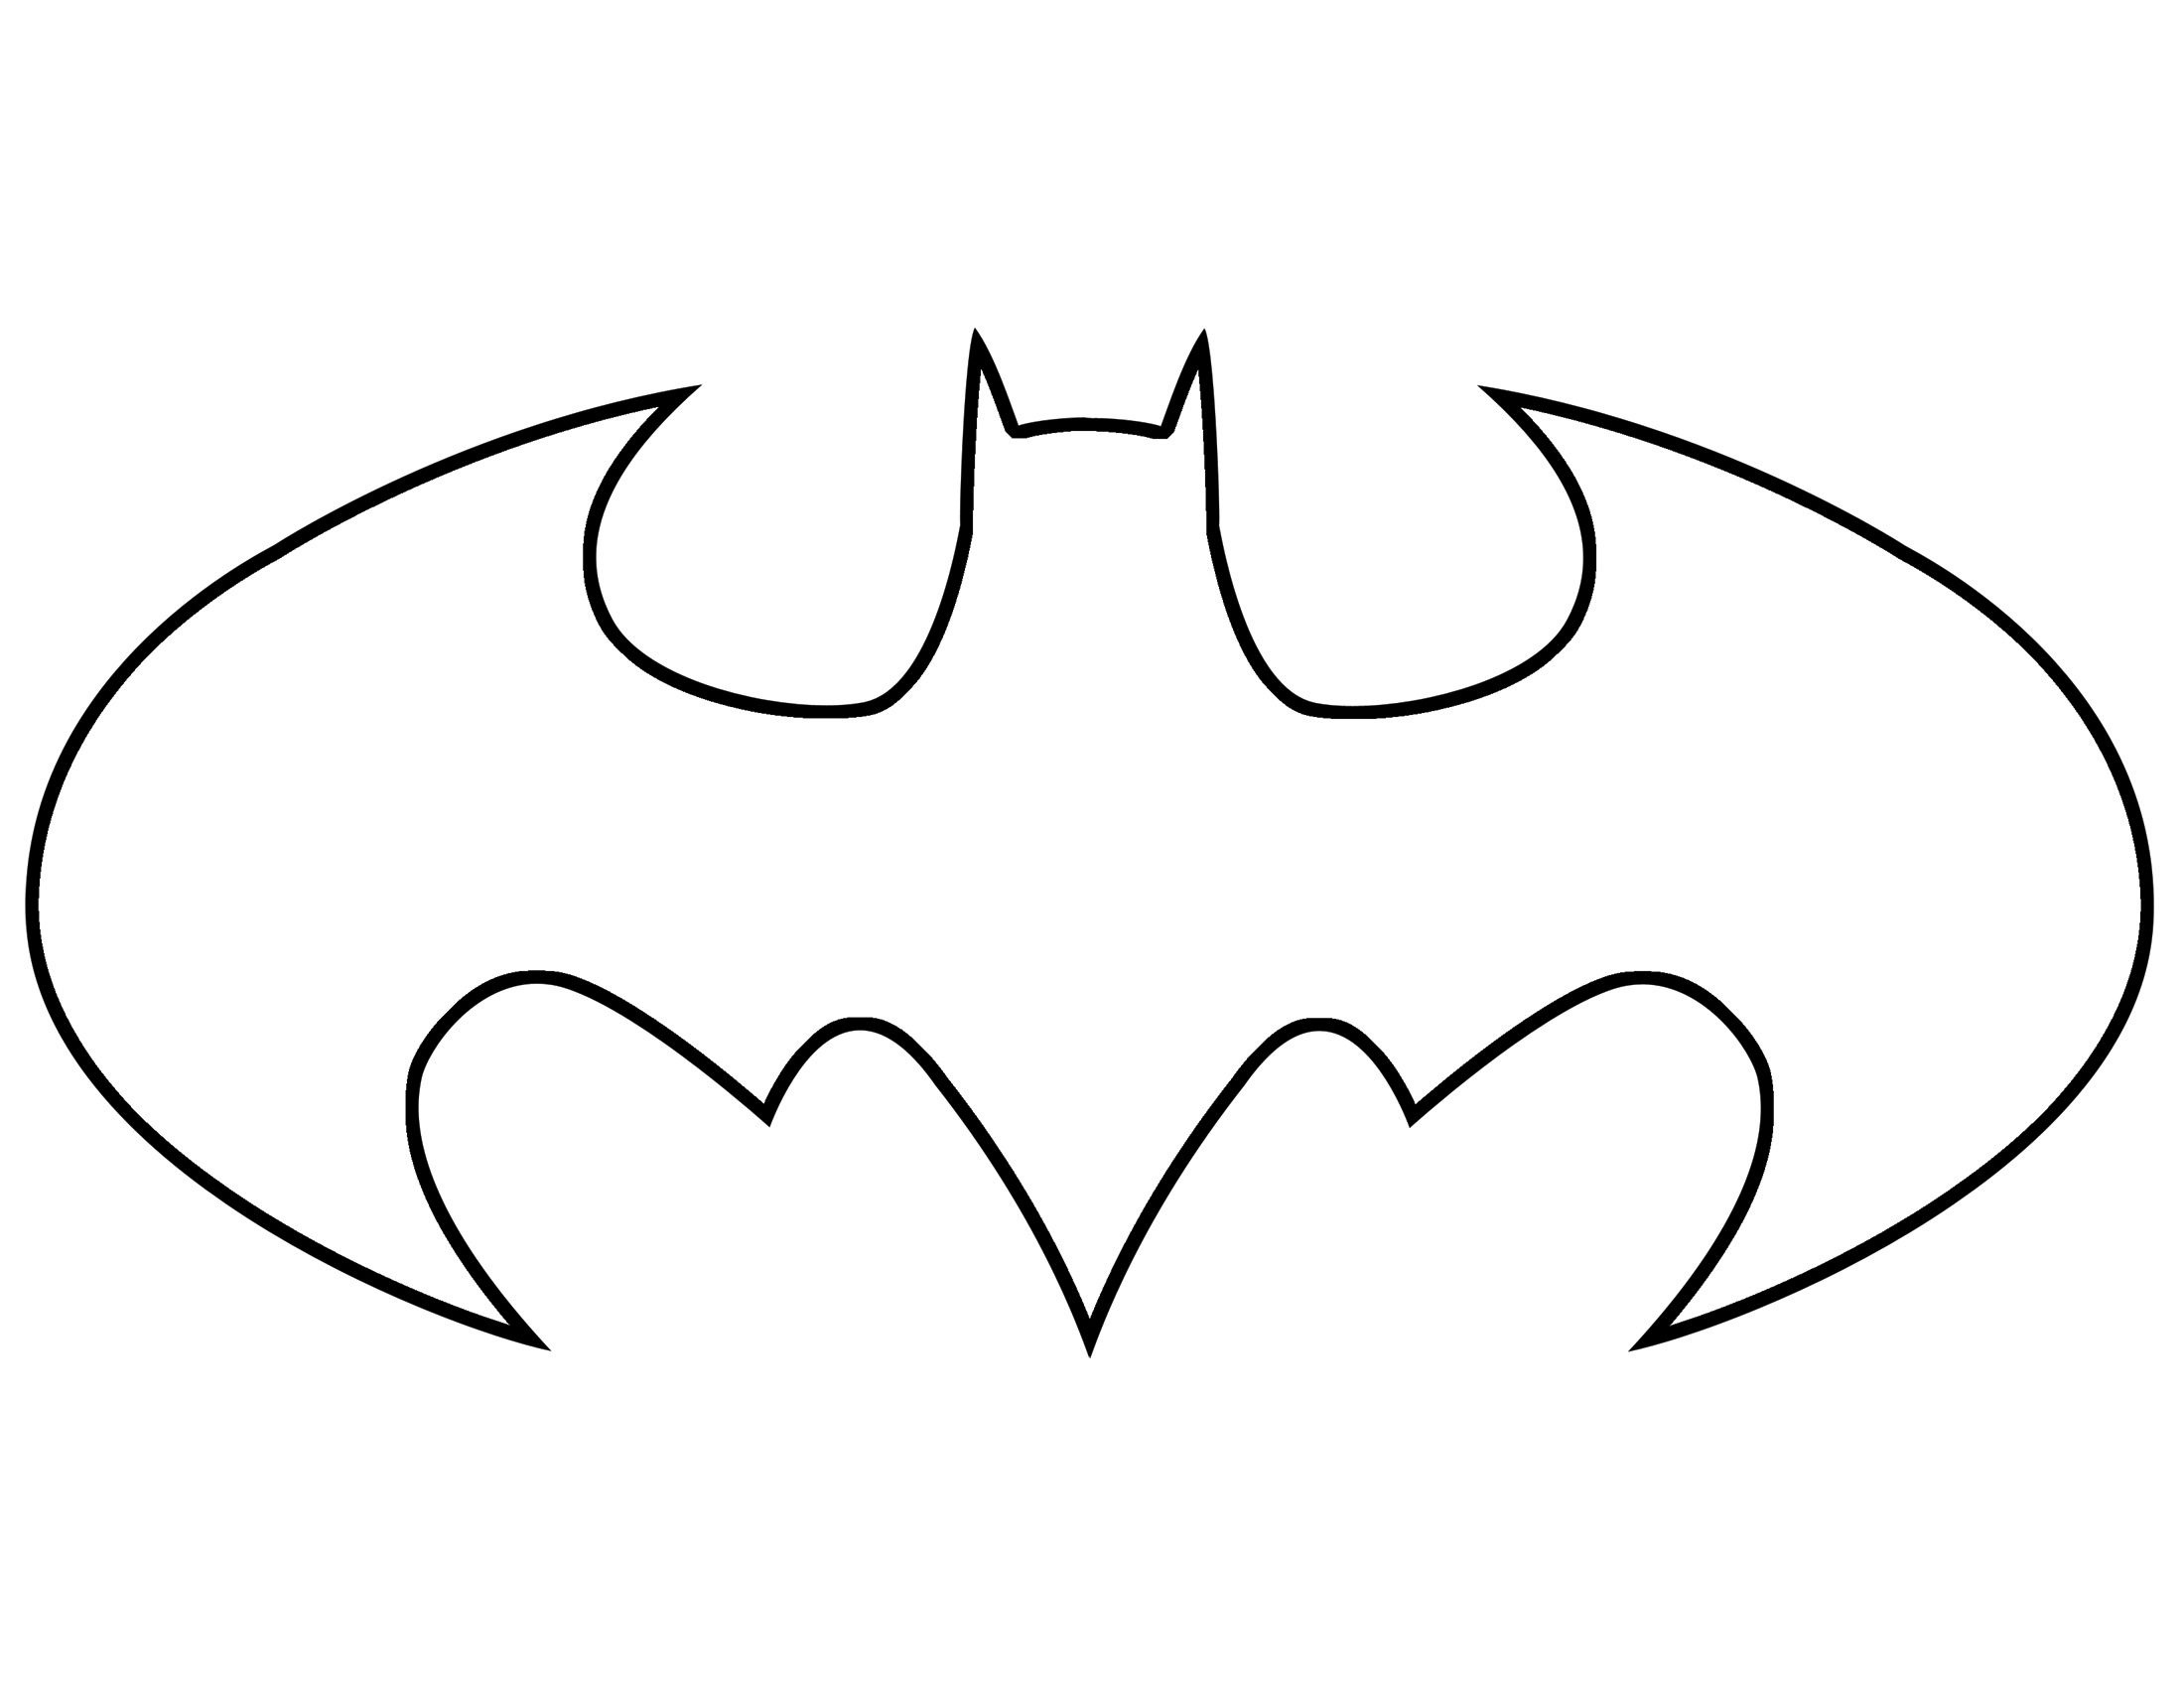 Free Pumpkin Stencils |  Stencils Provided Below Plus Batwoman - Superhero Pumpkin Stencils Free Printable